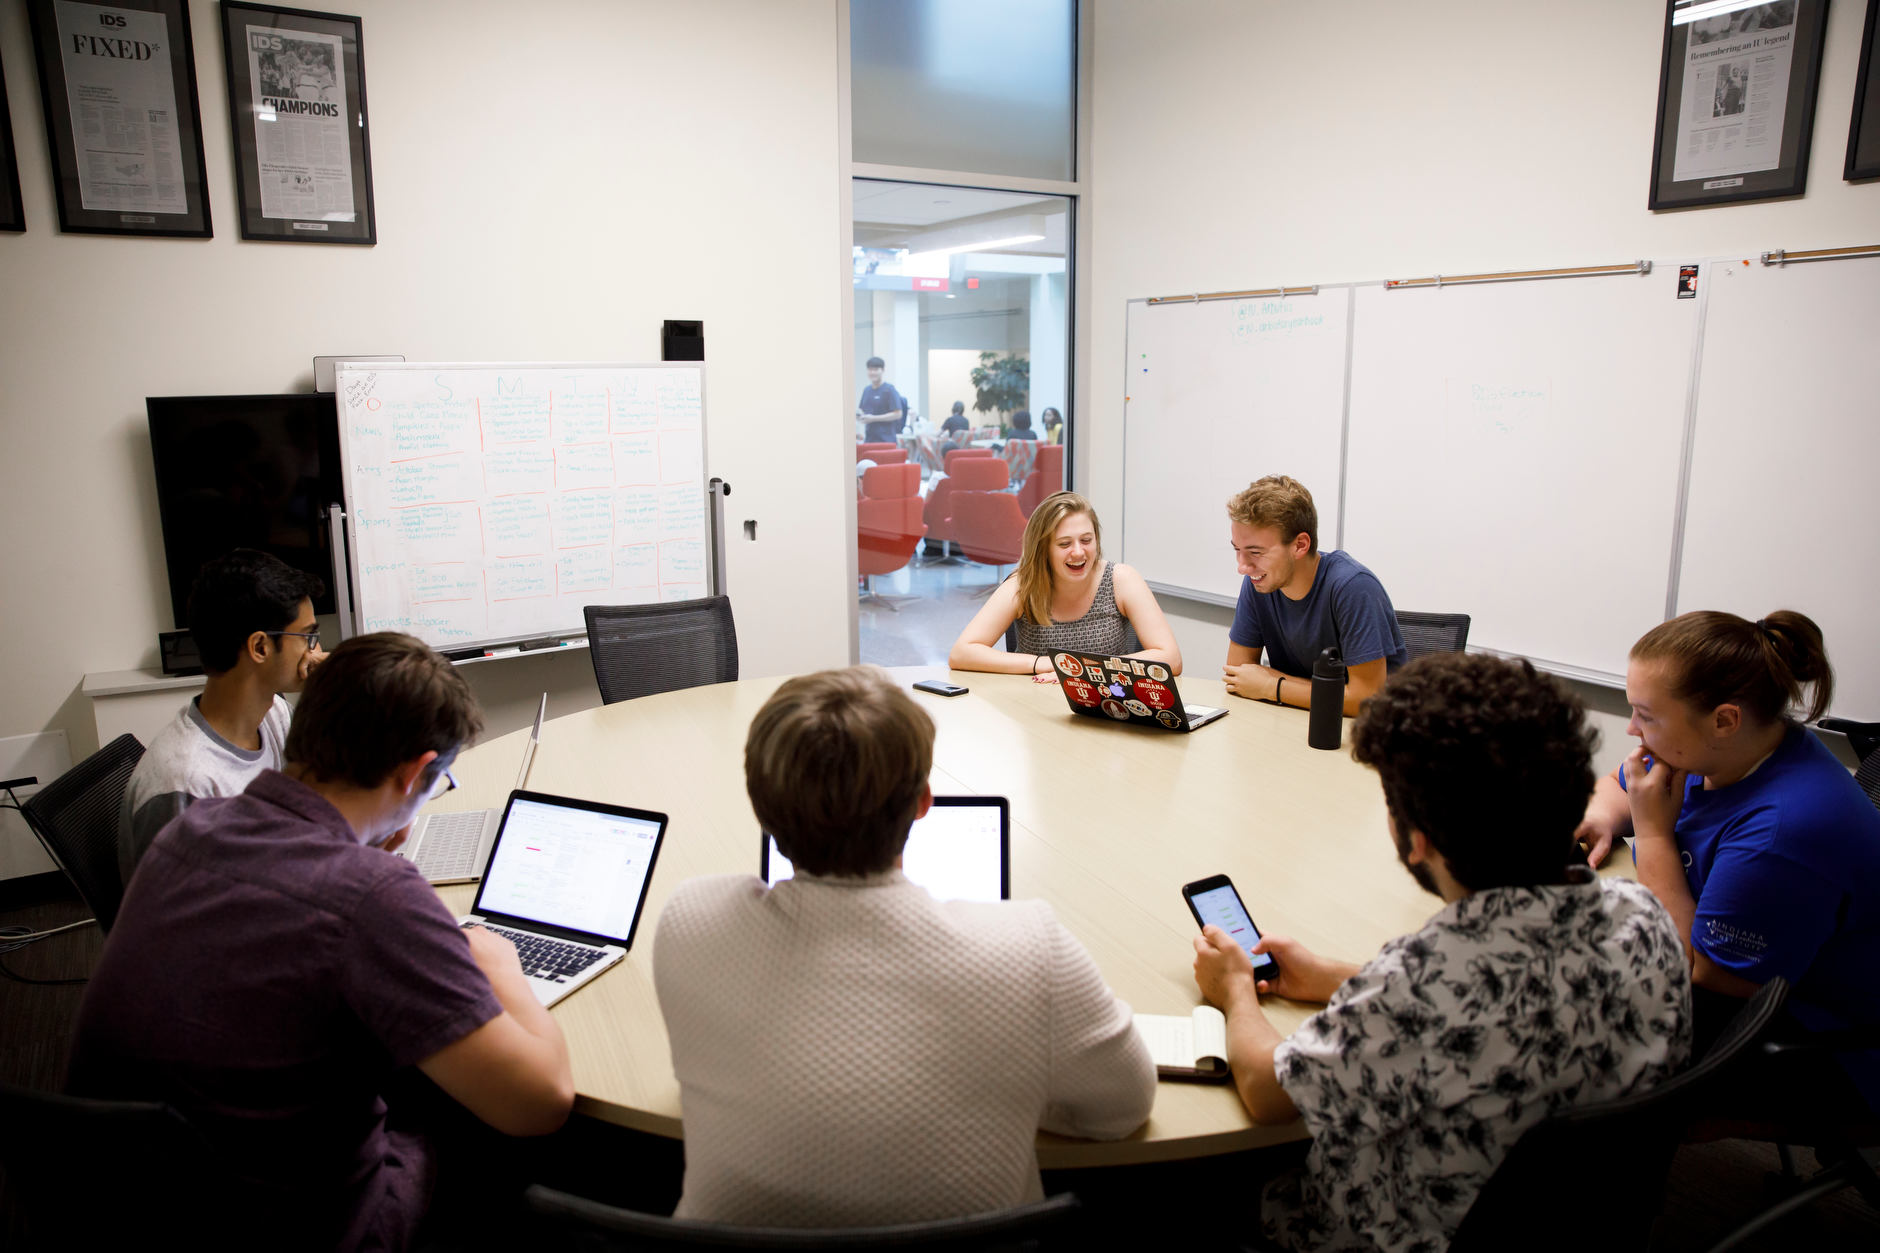 Indiana Daily Student newsroom at The Media School at Indiana University in Franklin Hall on Monday, Oct. 1, 2018.